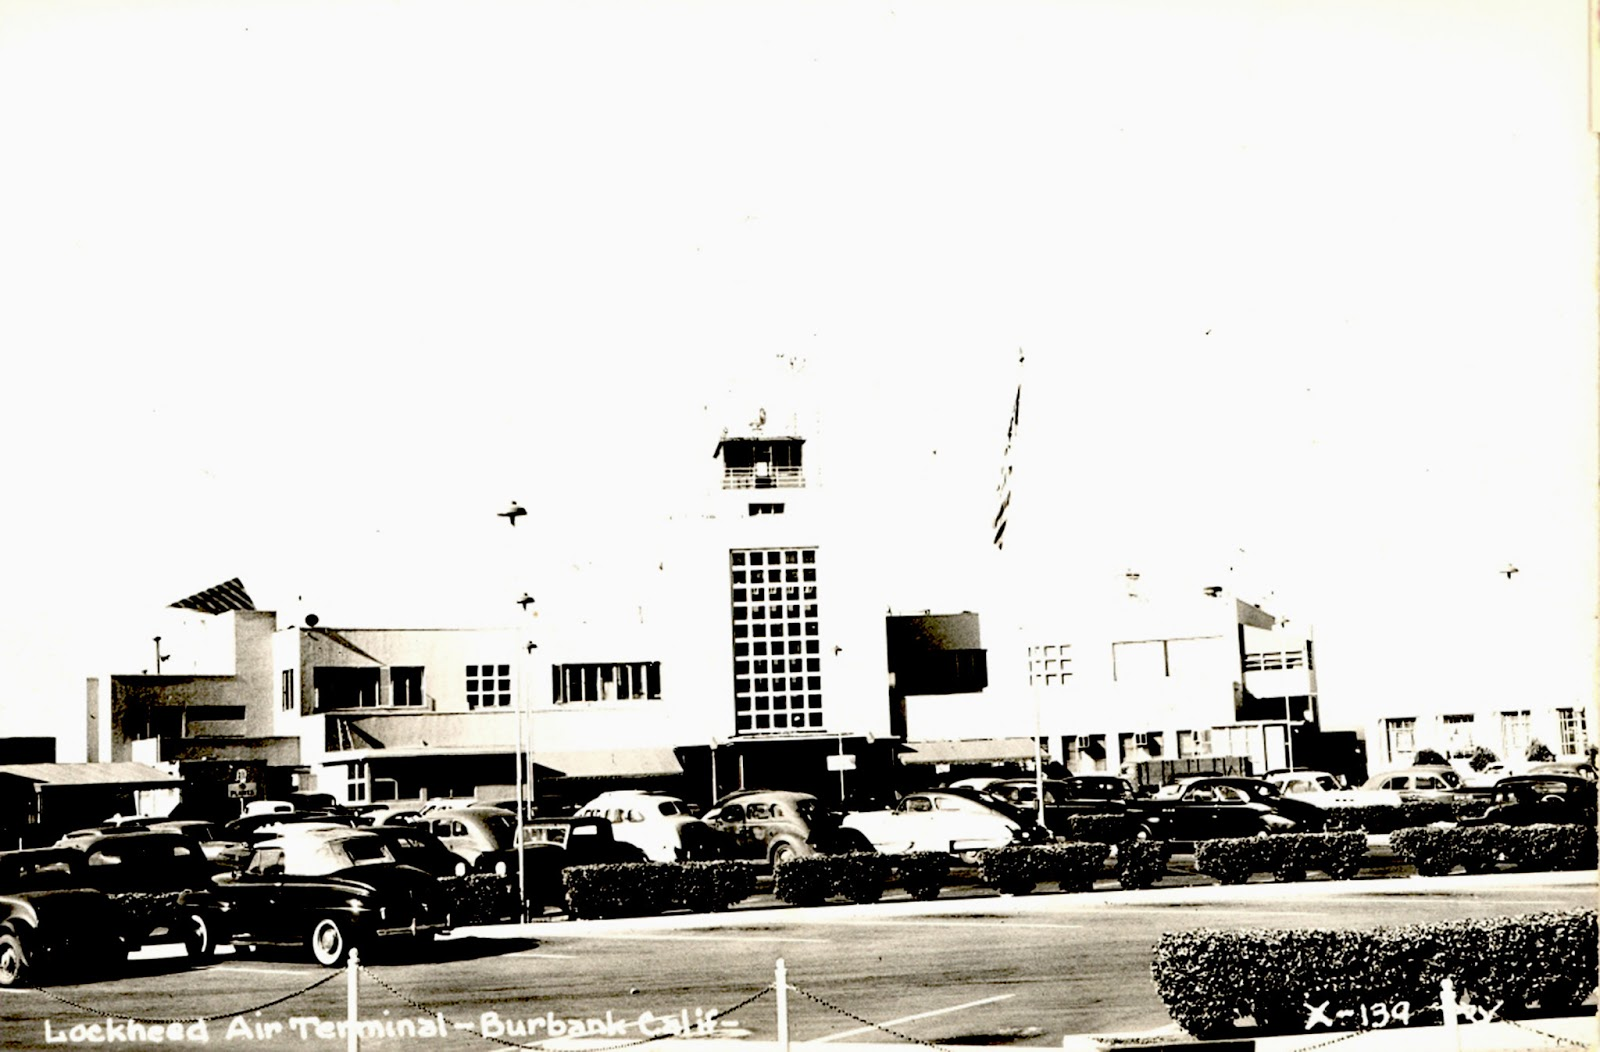 Lockheed Airport Terminal - Burbank, California - historic postcard - gift  to The Museum of the San Fernando Valley from Gary Fredburg 2013 (click on  image ...